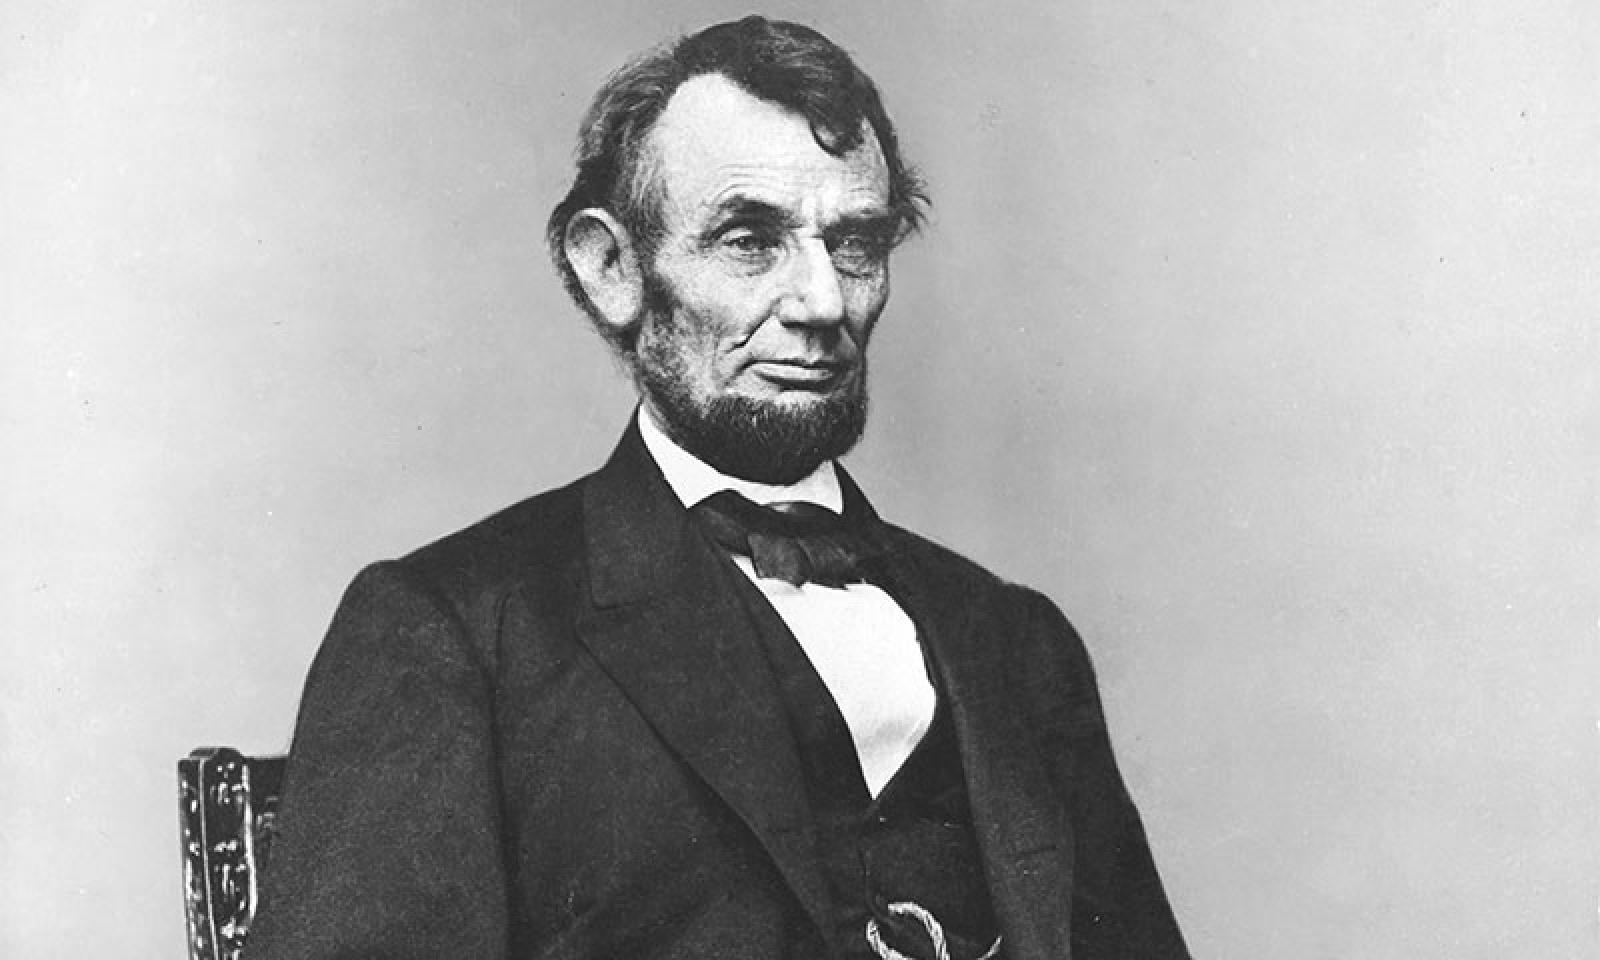 Lincoln Ordered the Greatest Mass Hanging in America's History